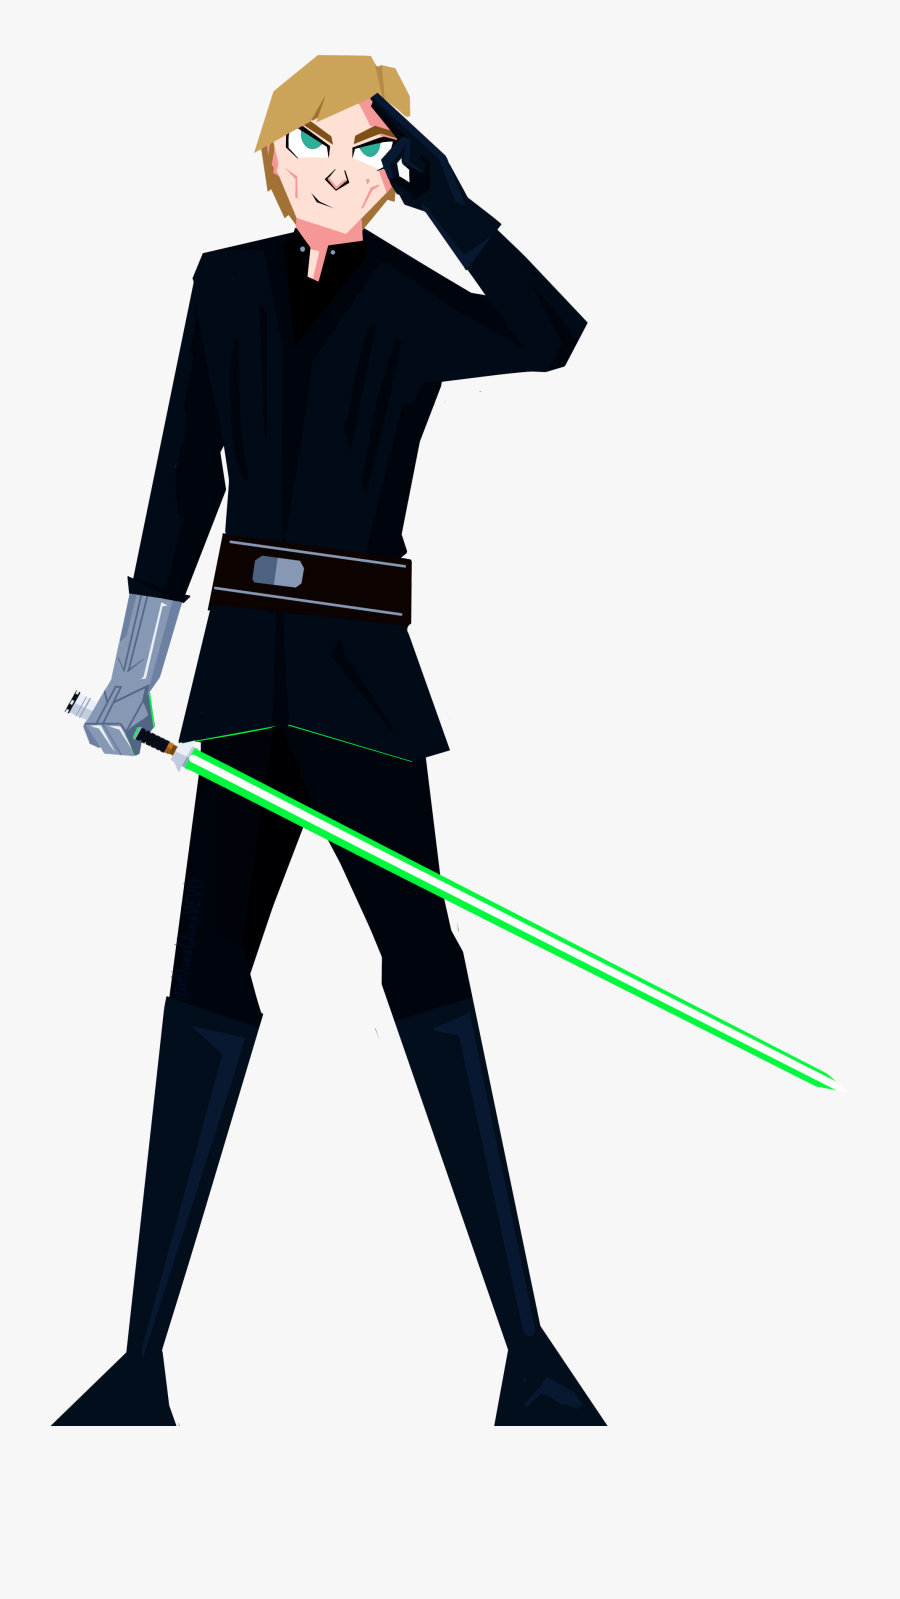 Greetings Exalted Ones, Drawing The Battlefront Day - Cartoon, Transparent Clipart